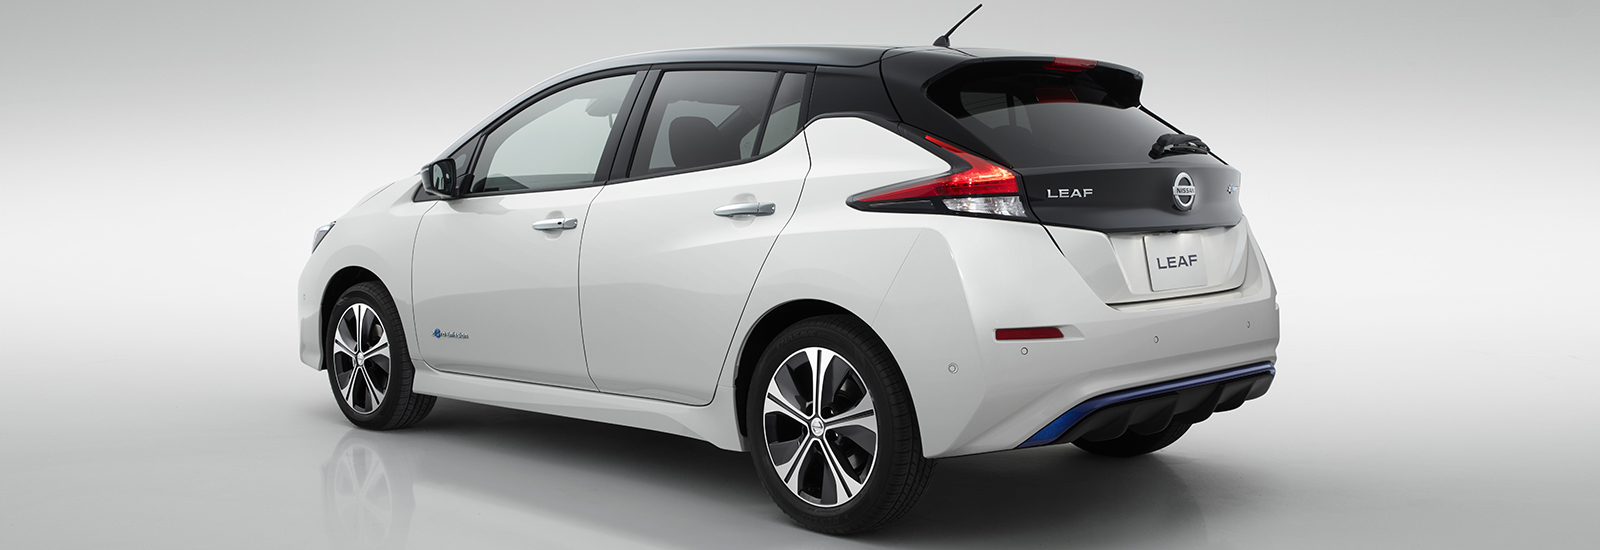 2018 nissan leaf price. brilliant nissan nissan leaf rear on 2018 nissan leaf price